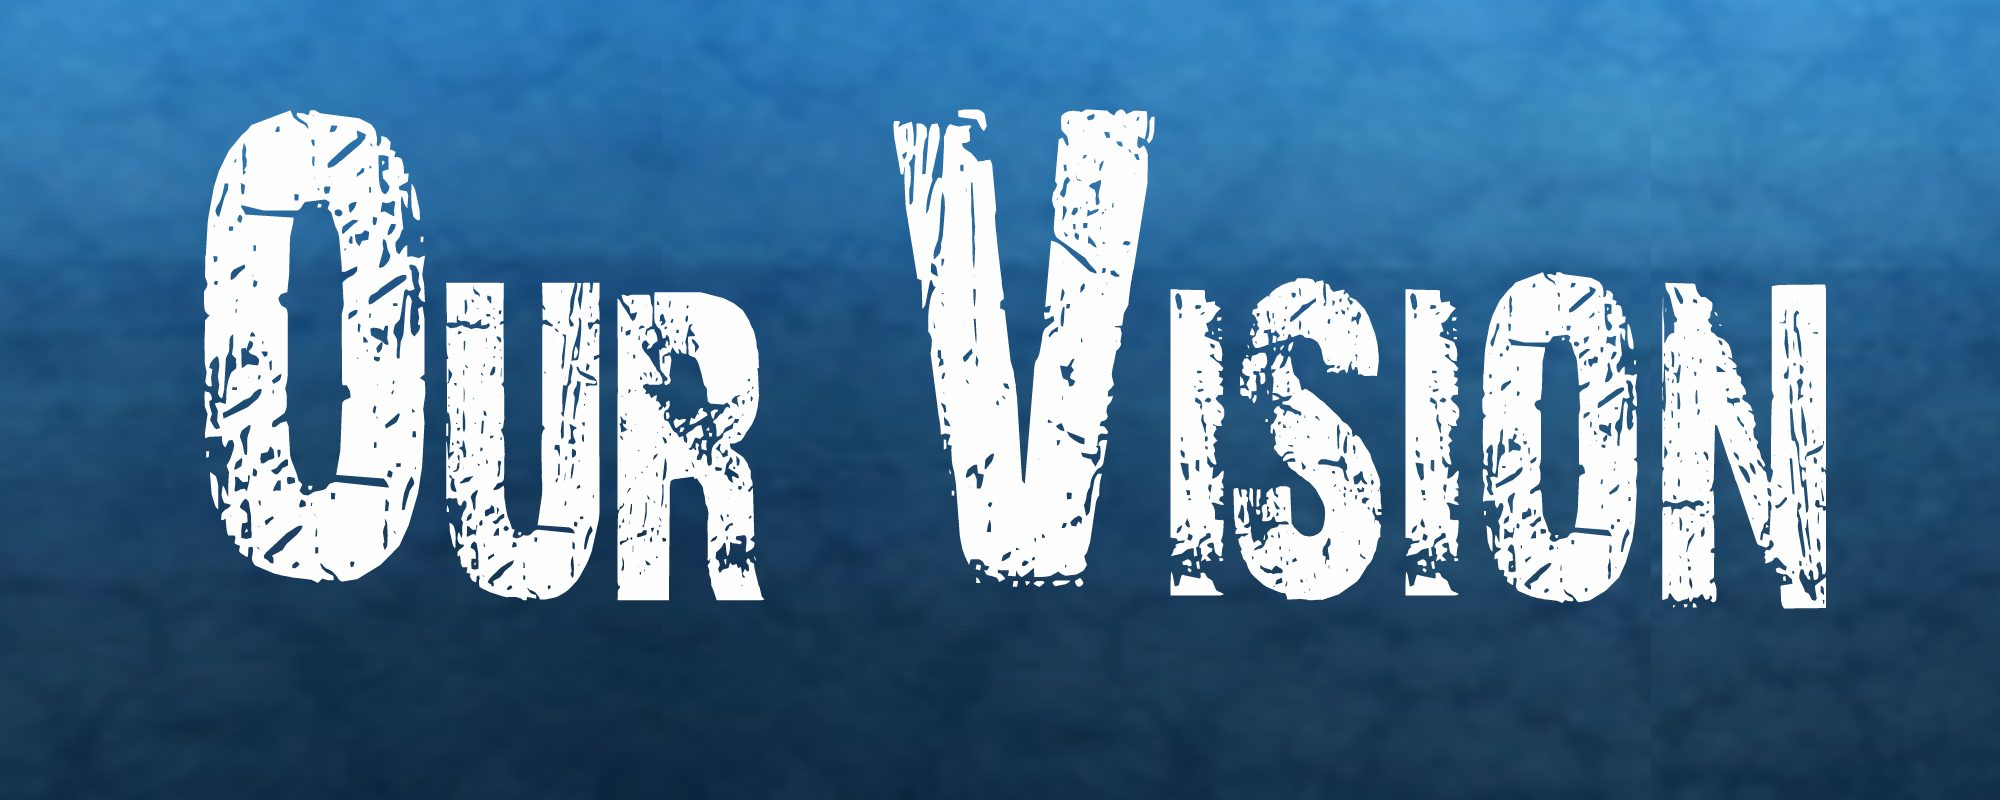 Missions Our Vision2.jpg